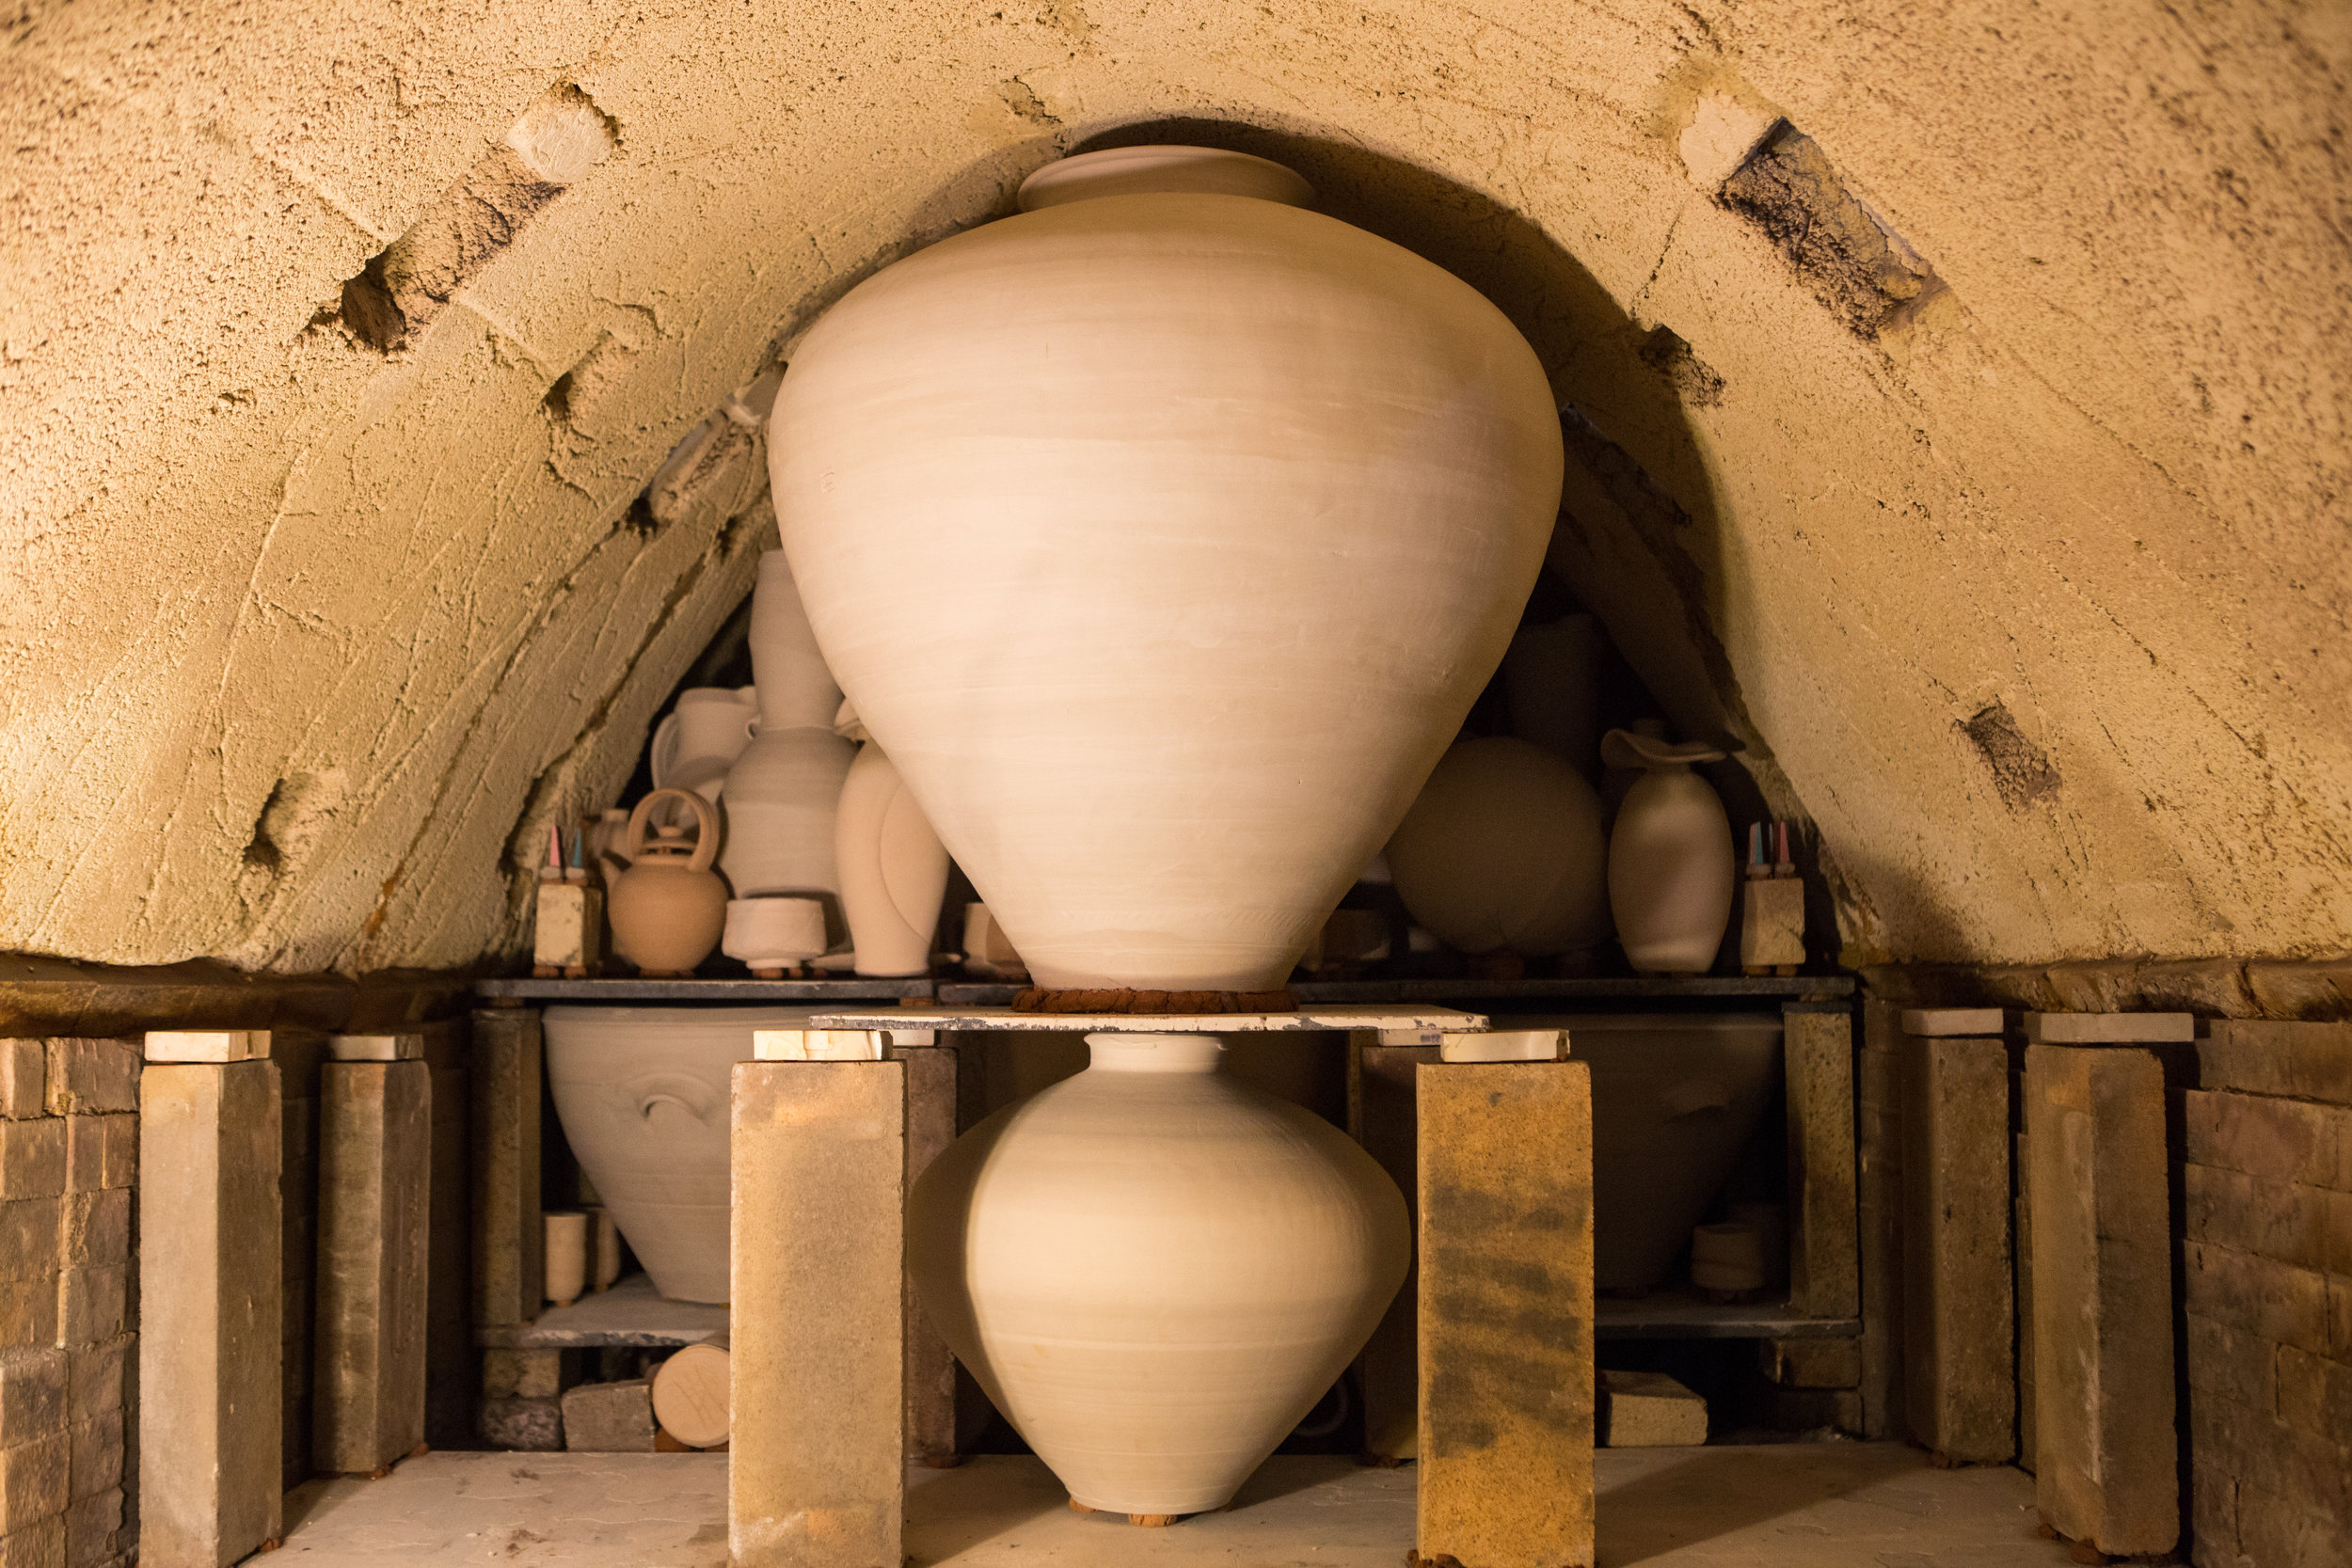 Anagama kiln at Tye River Pottery filled with very large pots featured in this show.